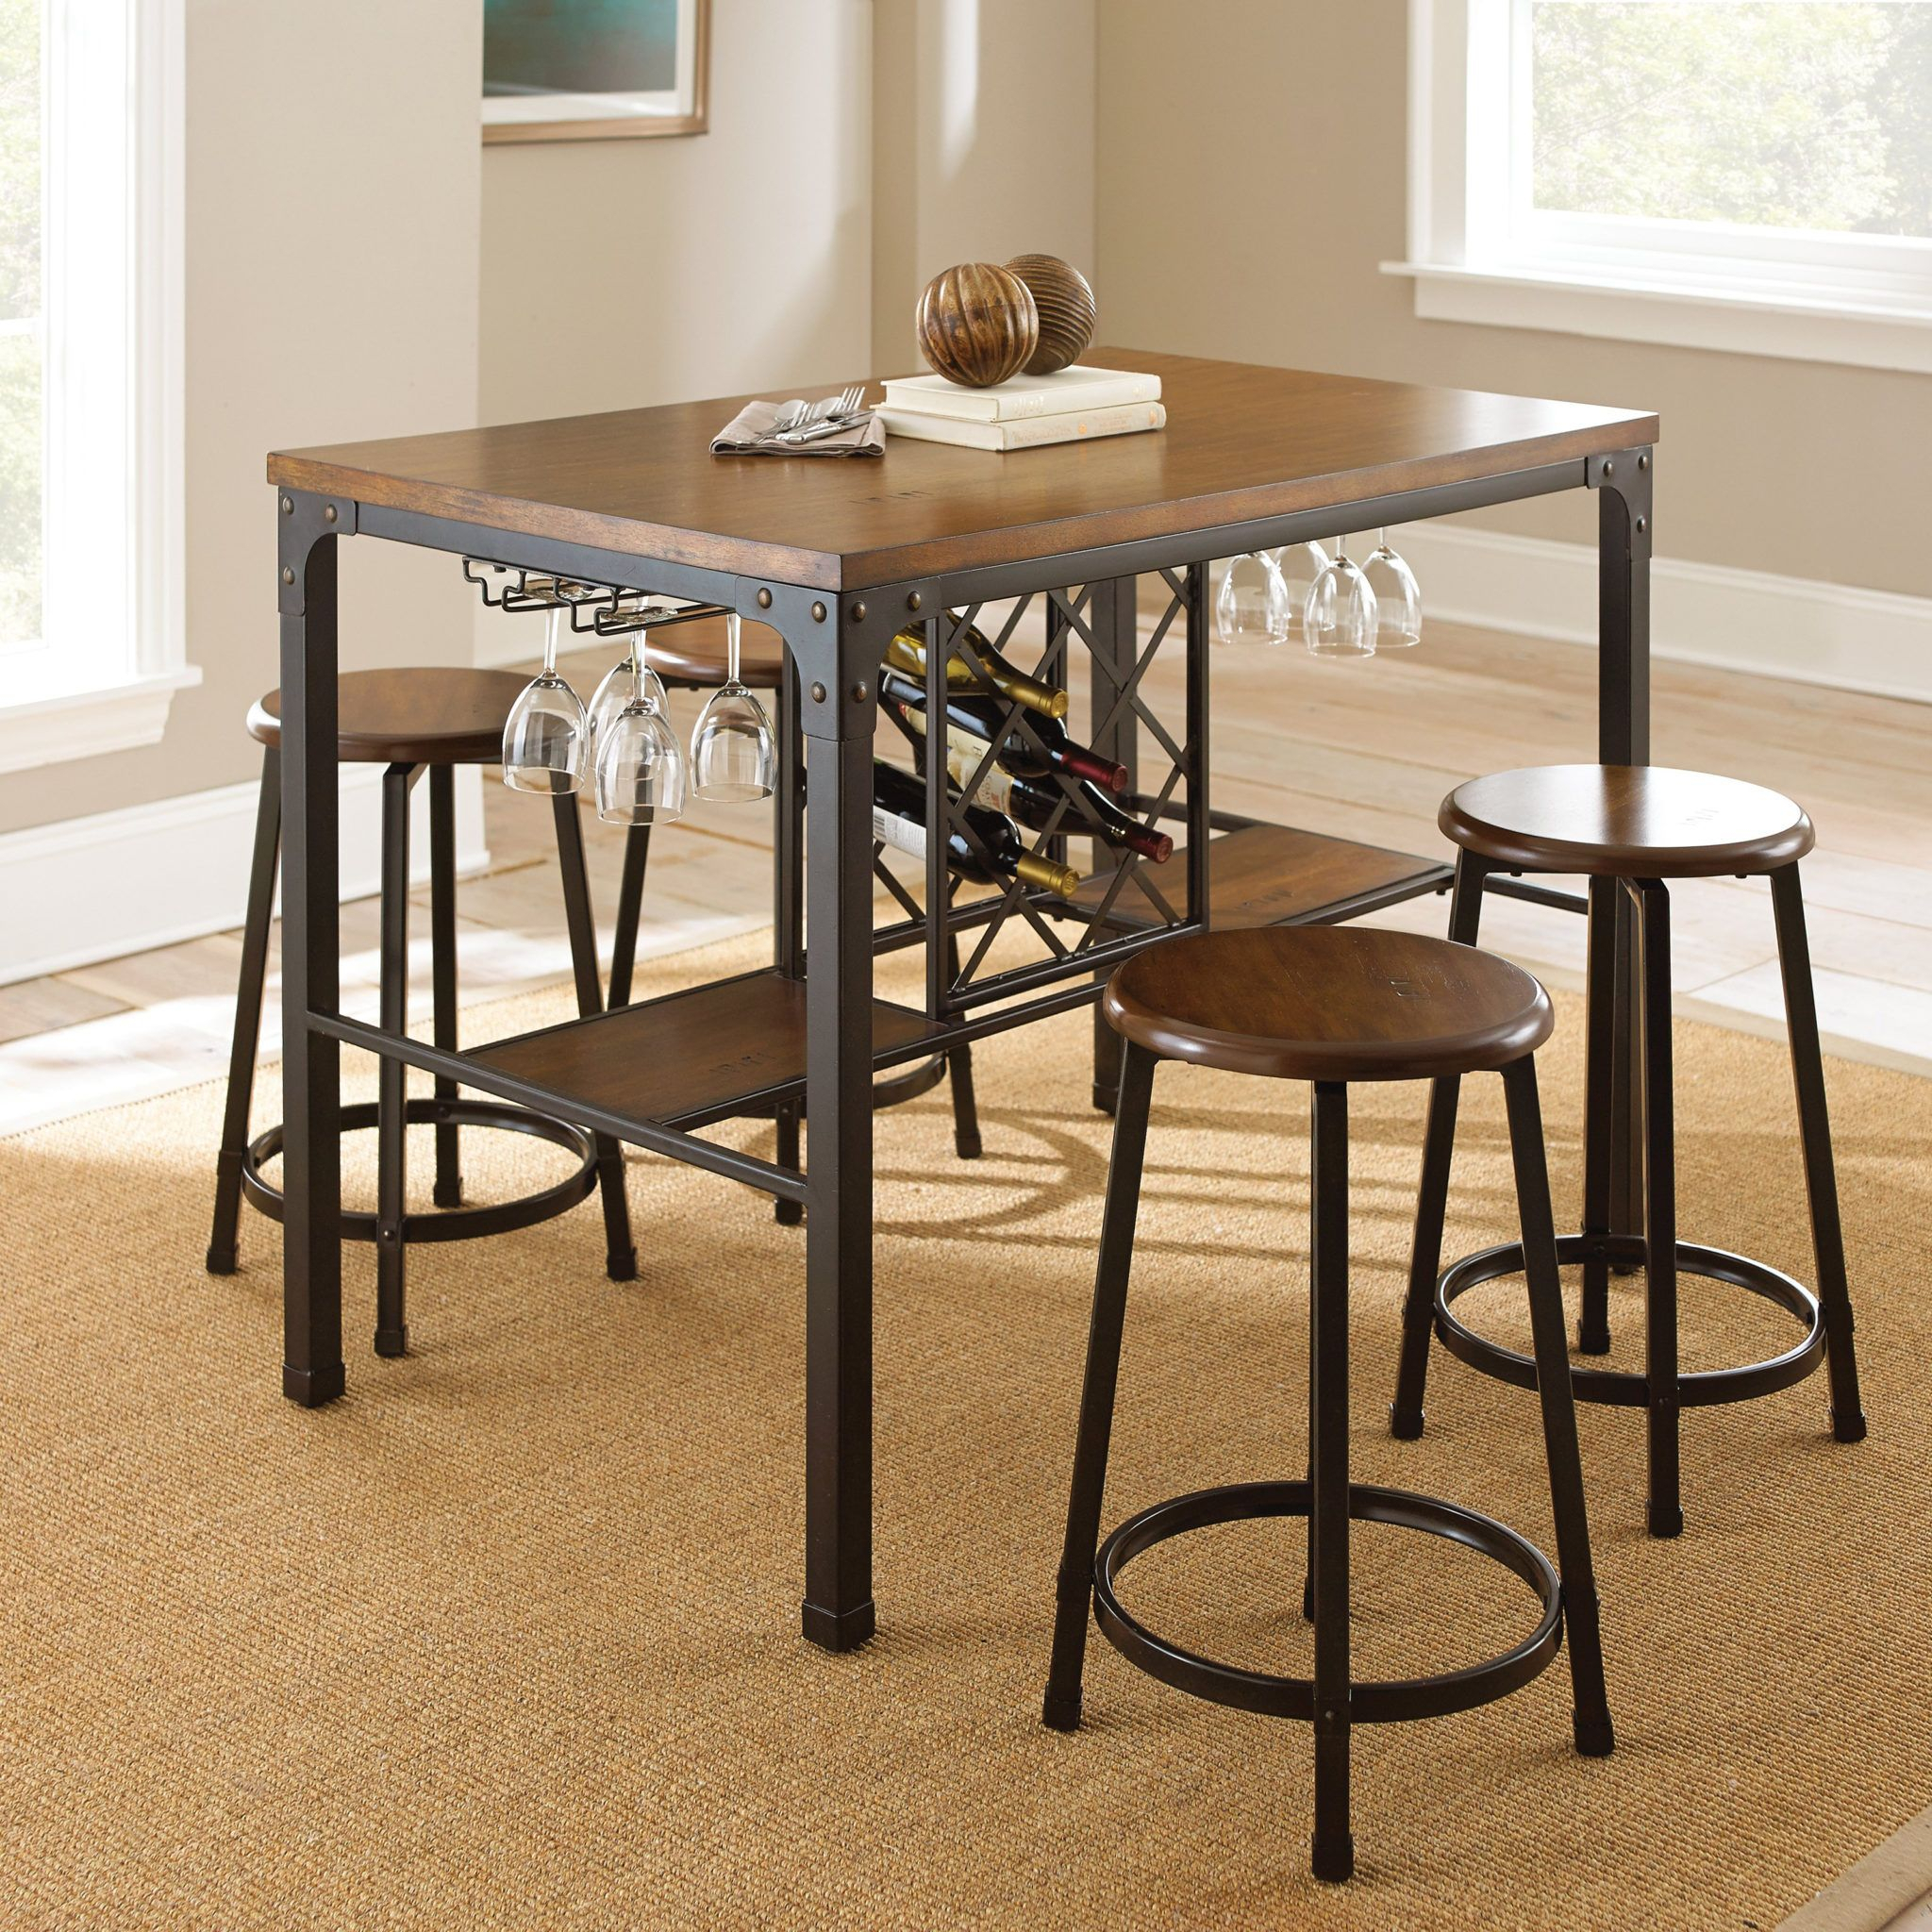 Creative Kitchen Table With Wine Rack Underneath | Kitchentable In Within Latest Berrios 3 Piece Counter Height Dining Sets (Photo 9 of 20)